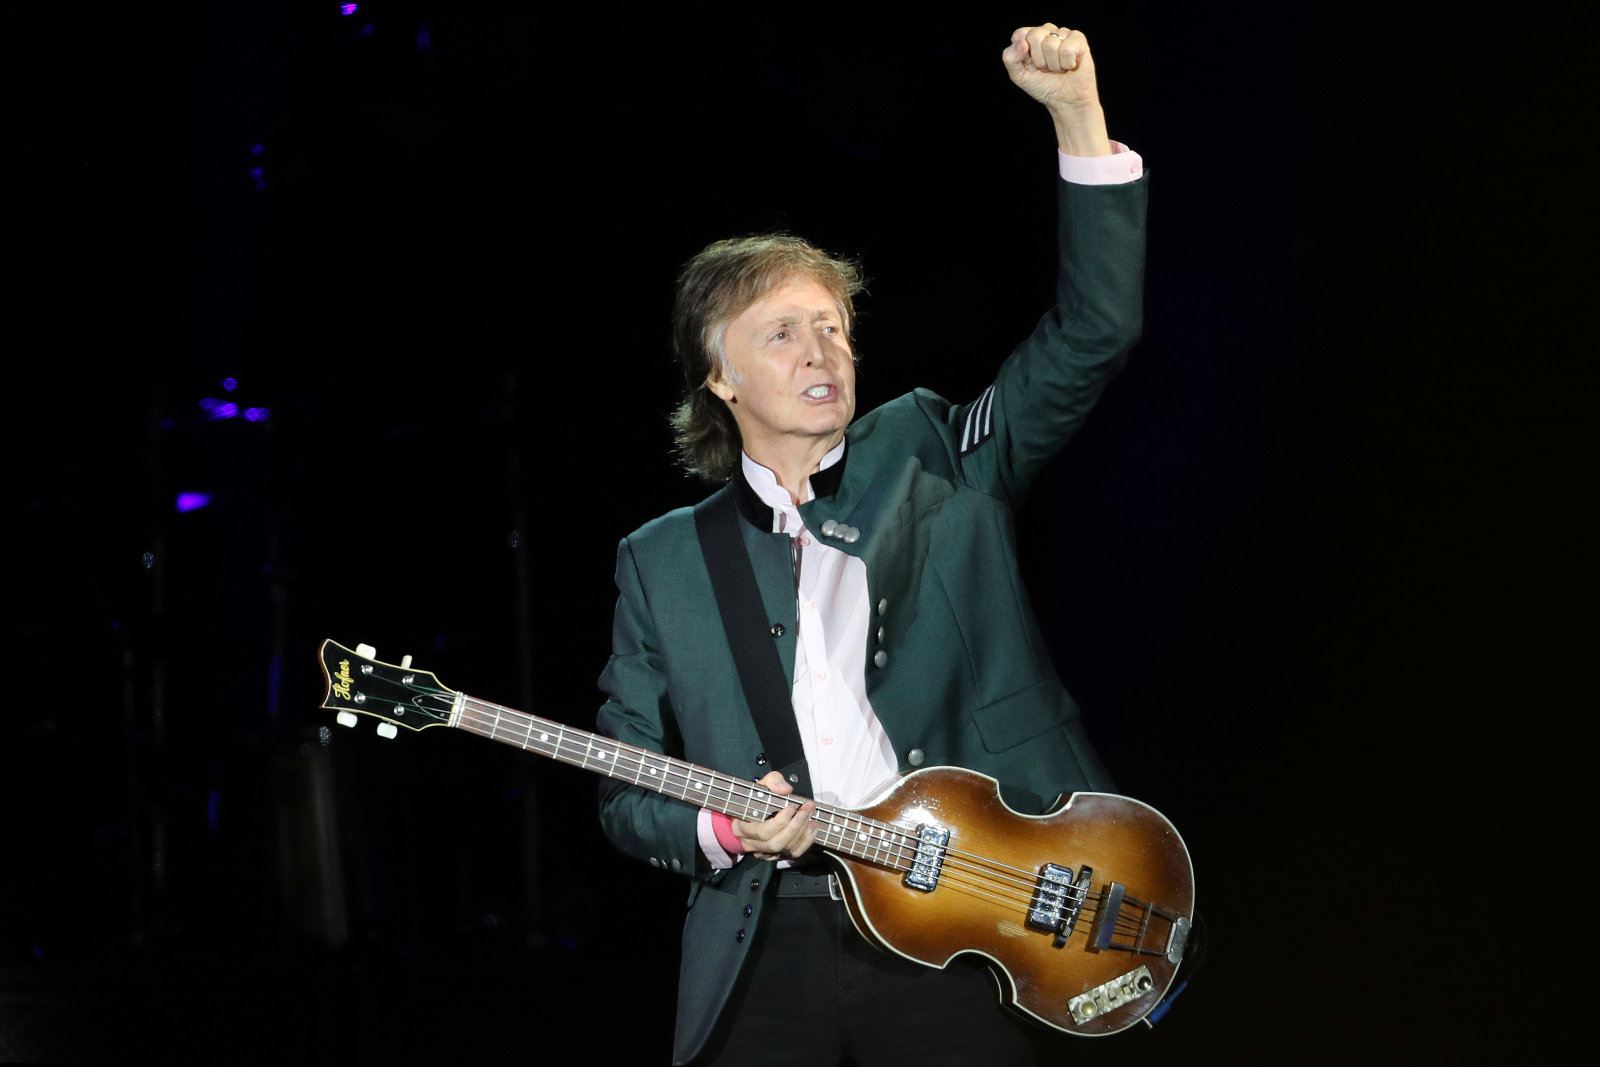 """British musician Paul McCartney performs during the """"One on One"""" tour concert in Porto Alegre, Brazil October 13, 2017. REUTERS/Diego Vara"""